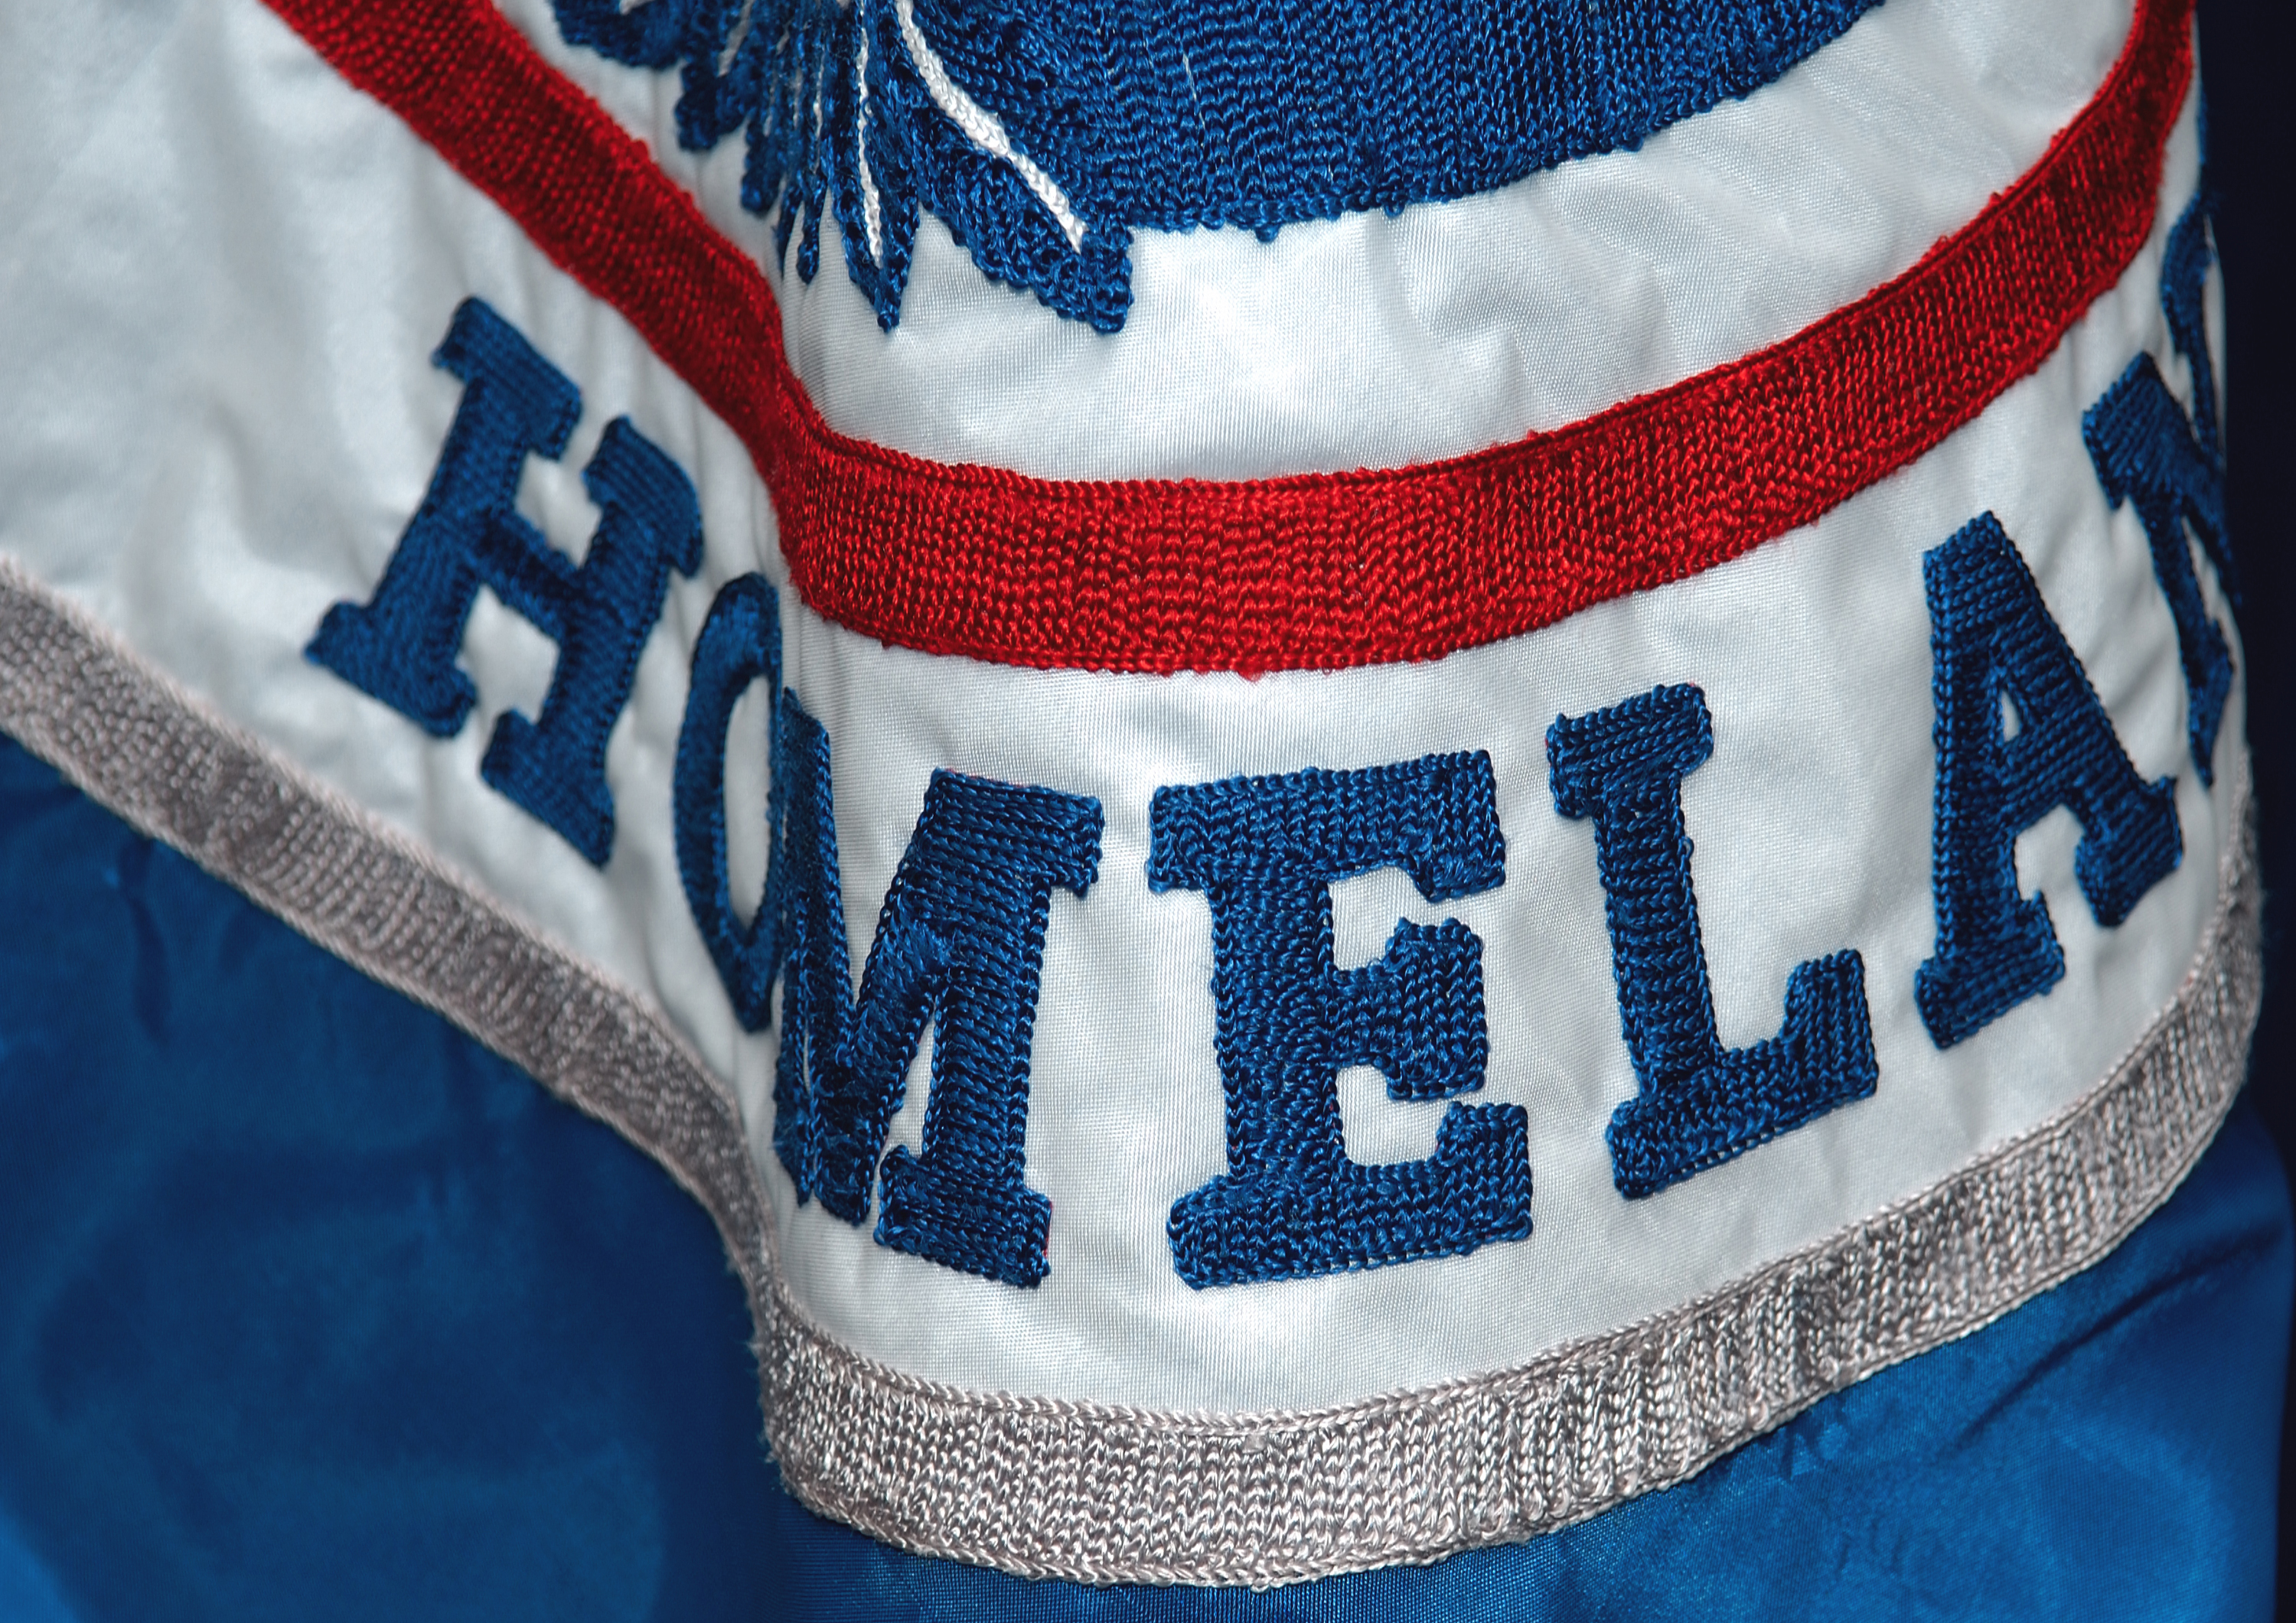 Detail of the Homeland Security Flag